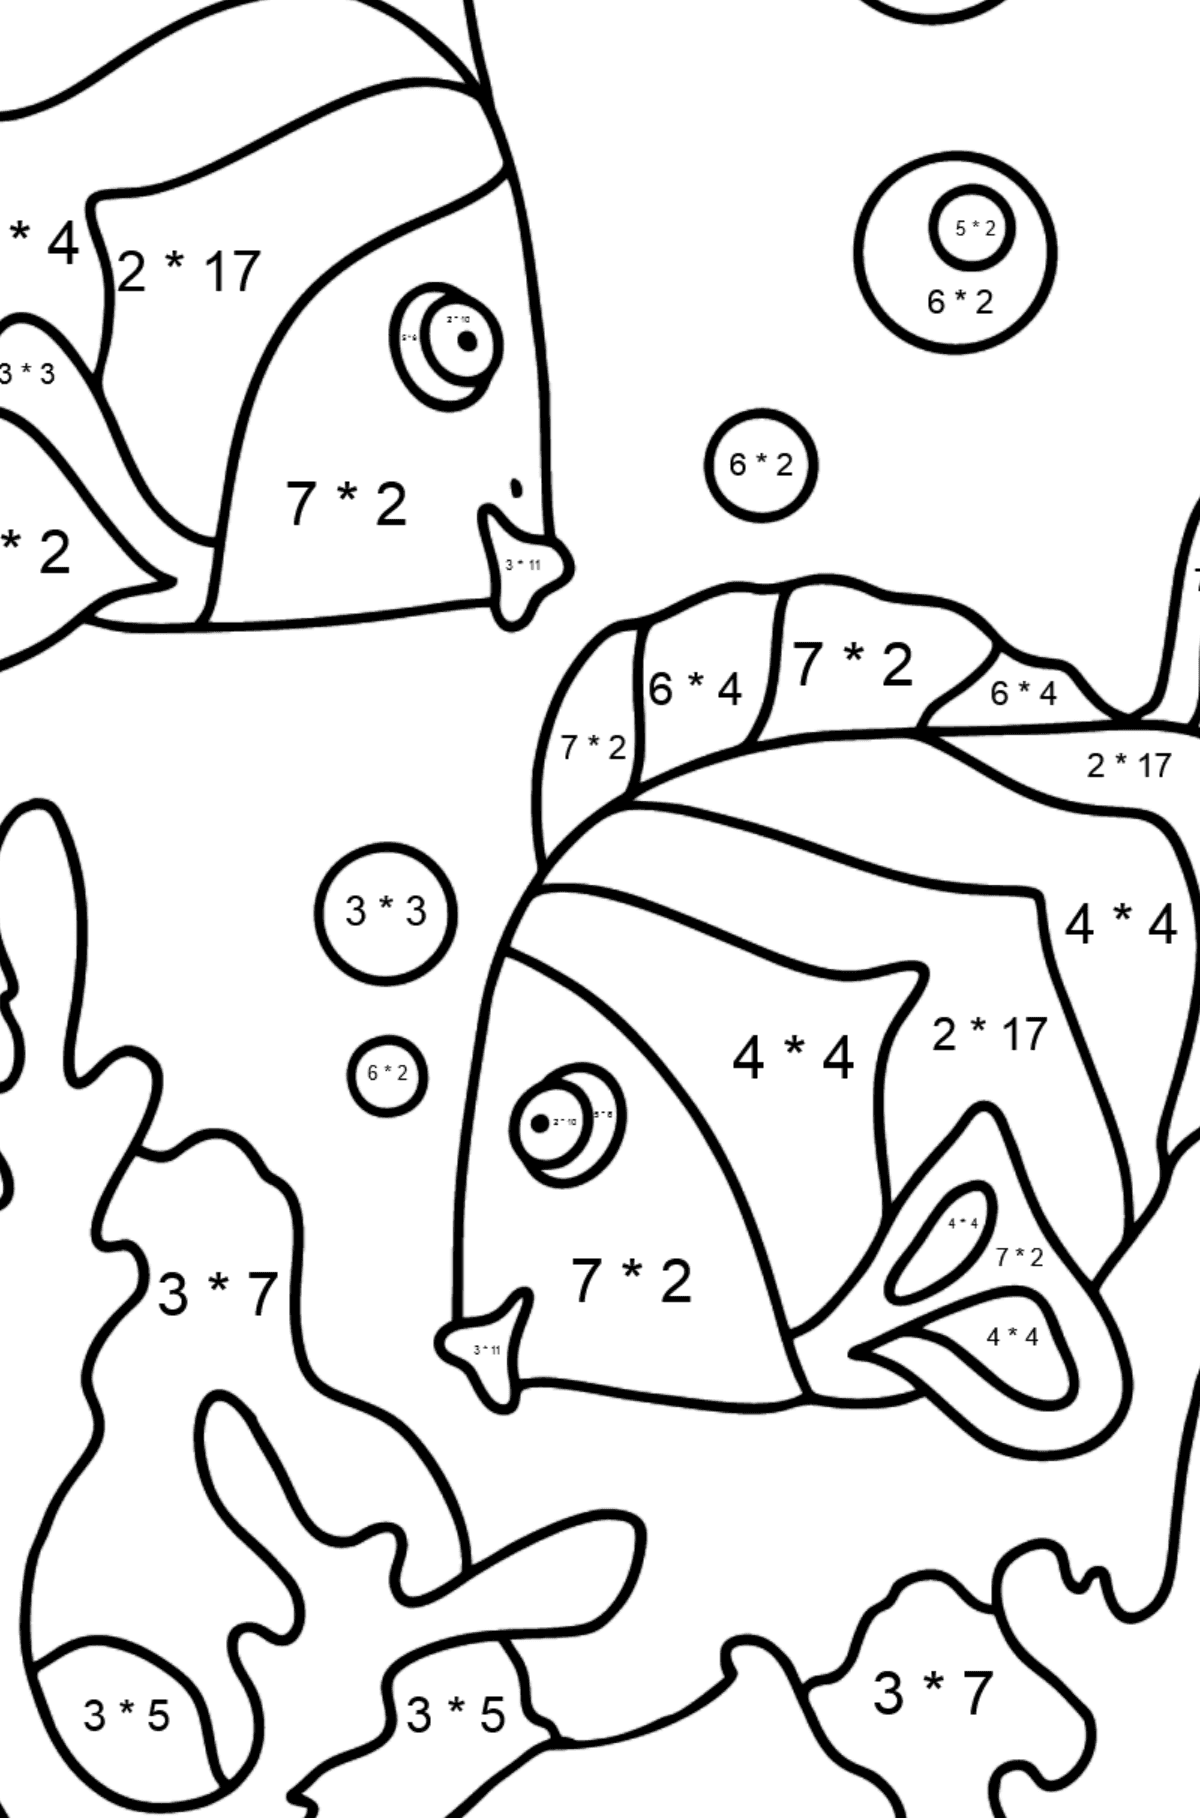 Coloring Page - Fish are Swimming Very Energetically - Math Coloring - Multiplication for Kids